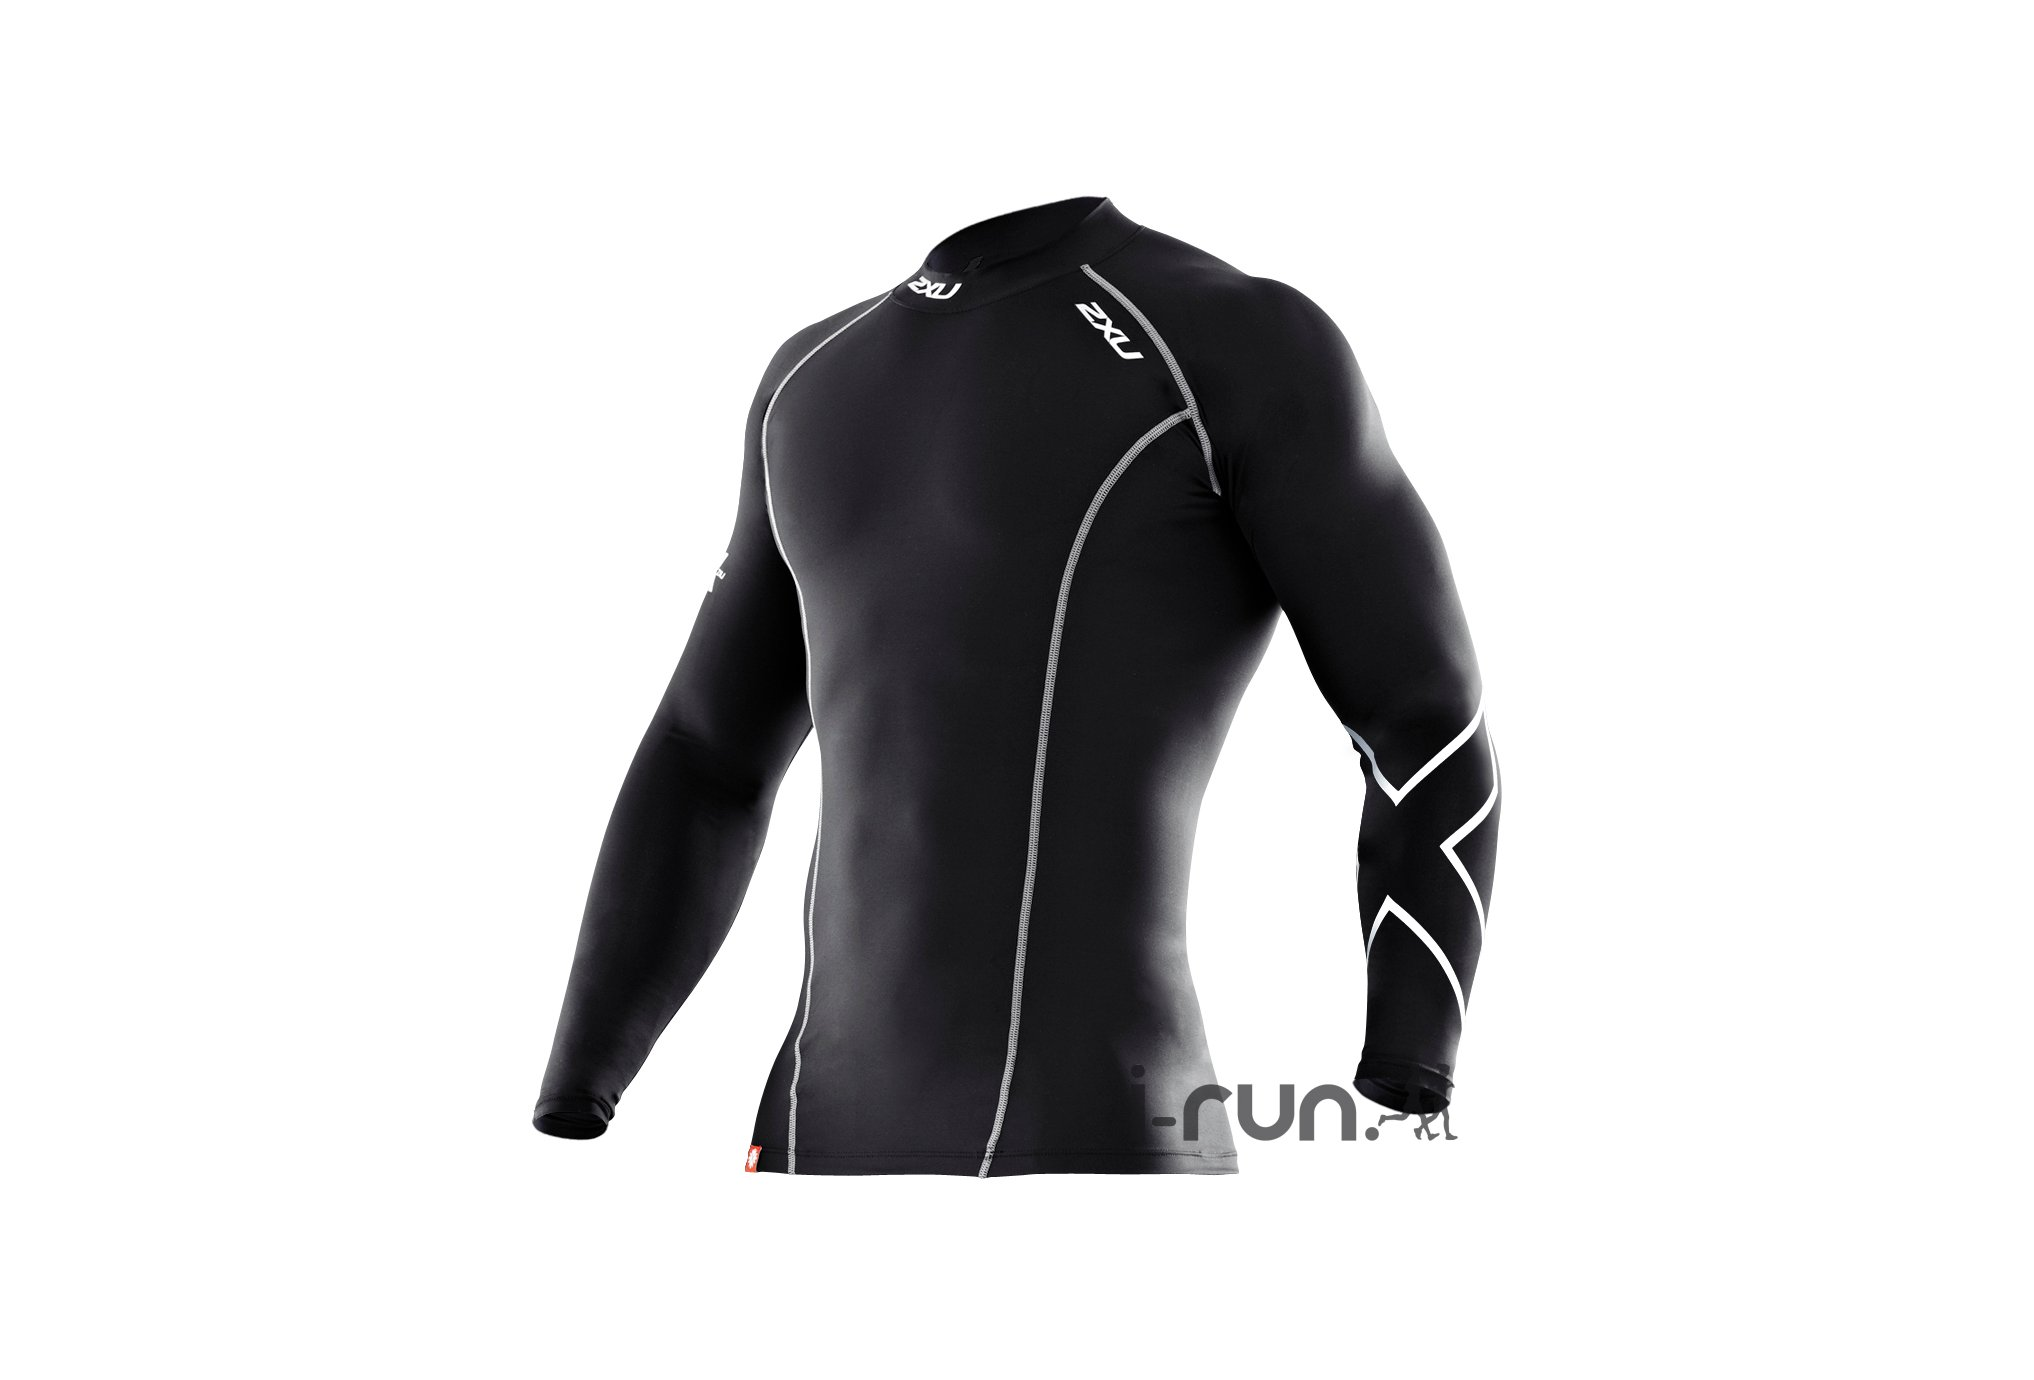 2xu Tee-Shirt l/s xform compression m vêtement running homme